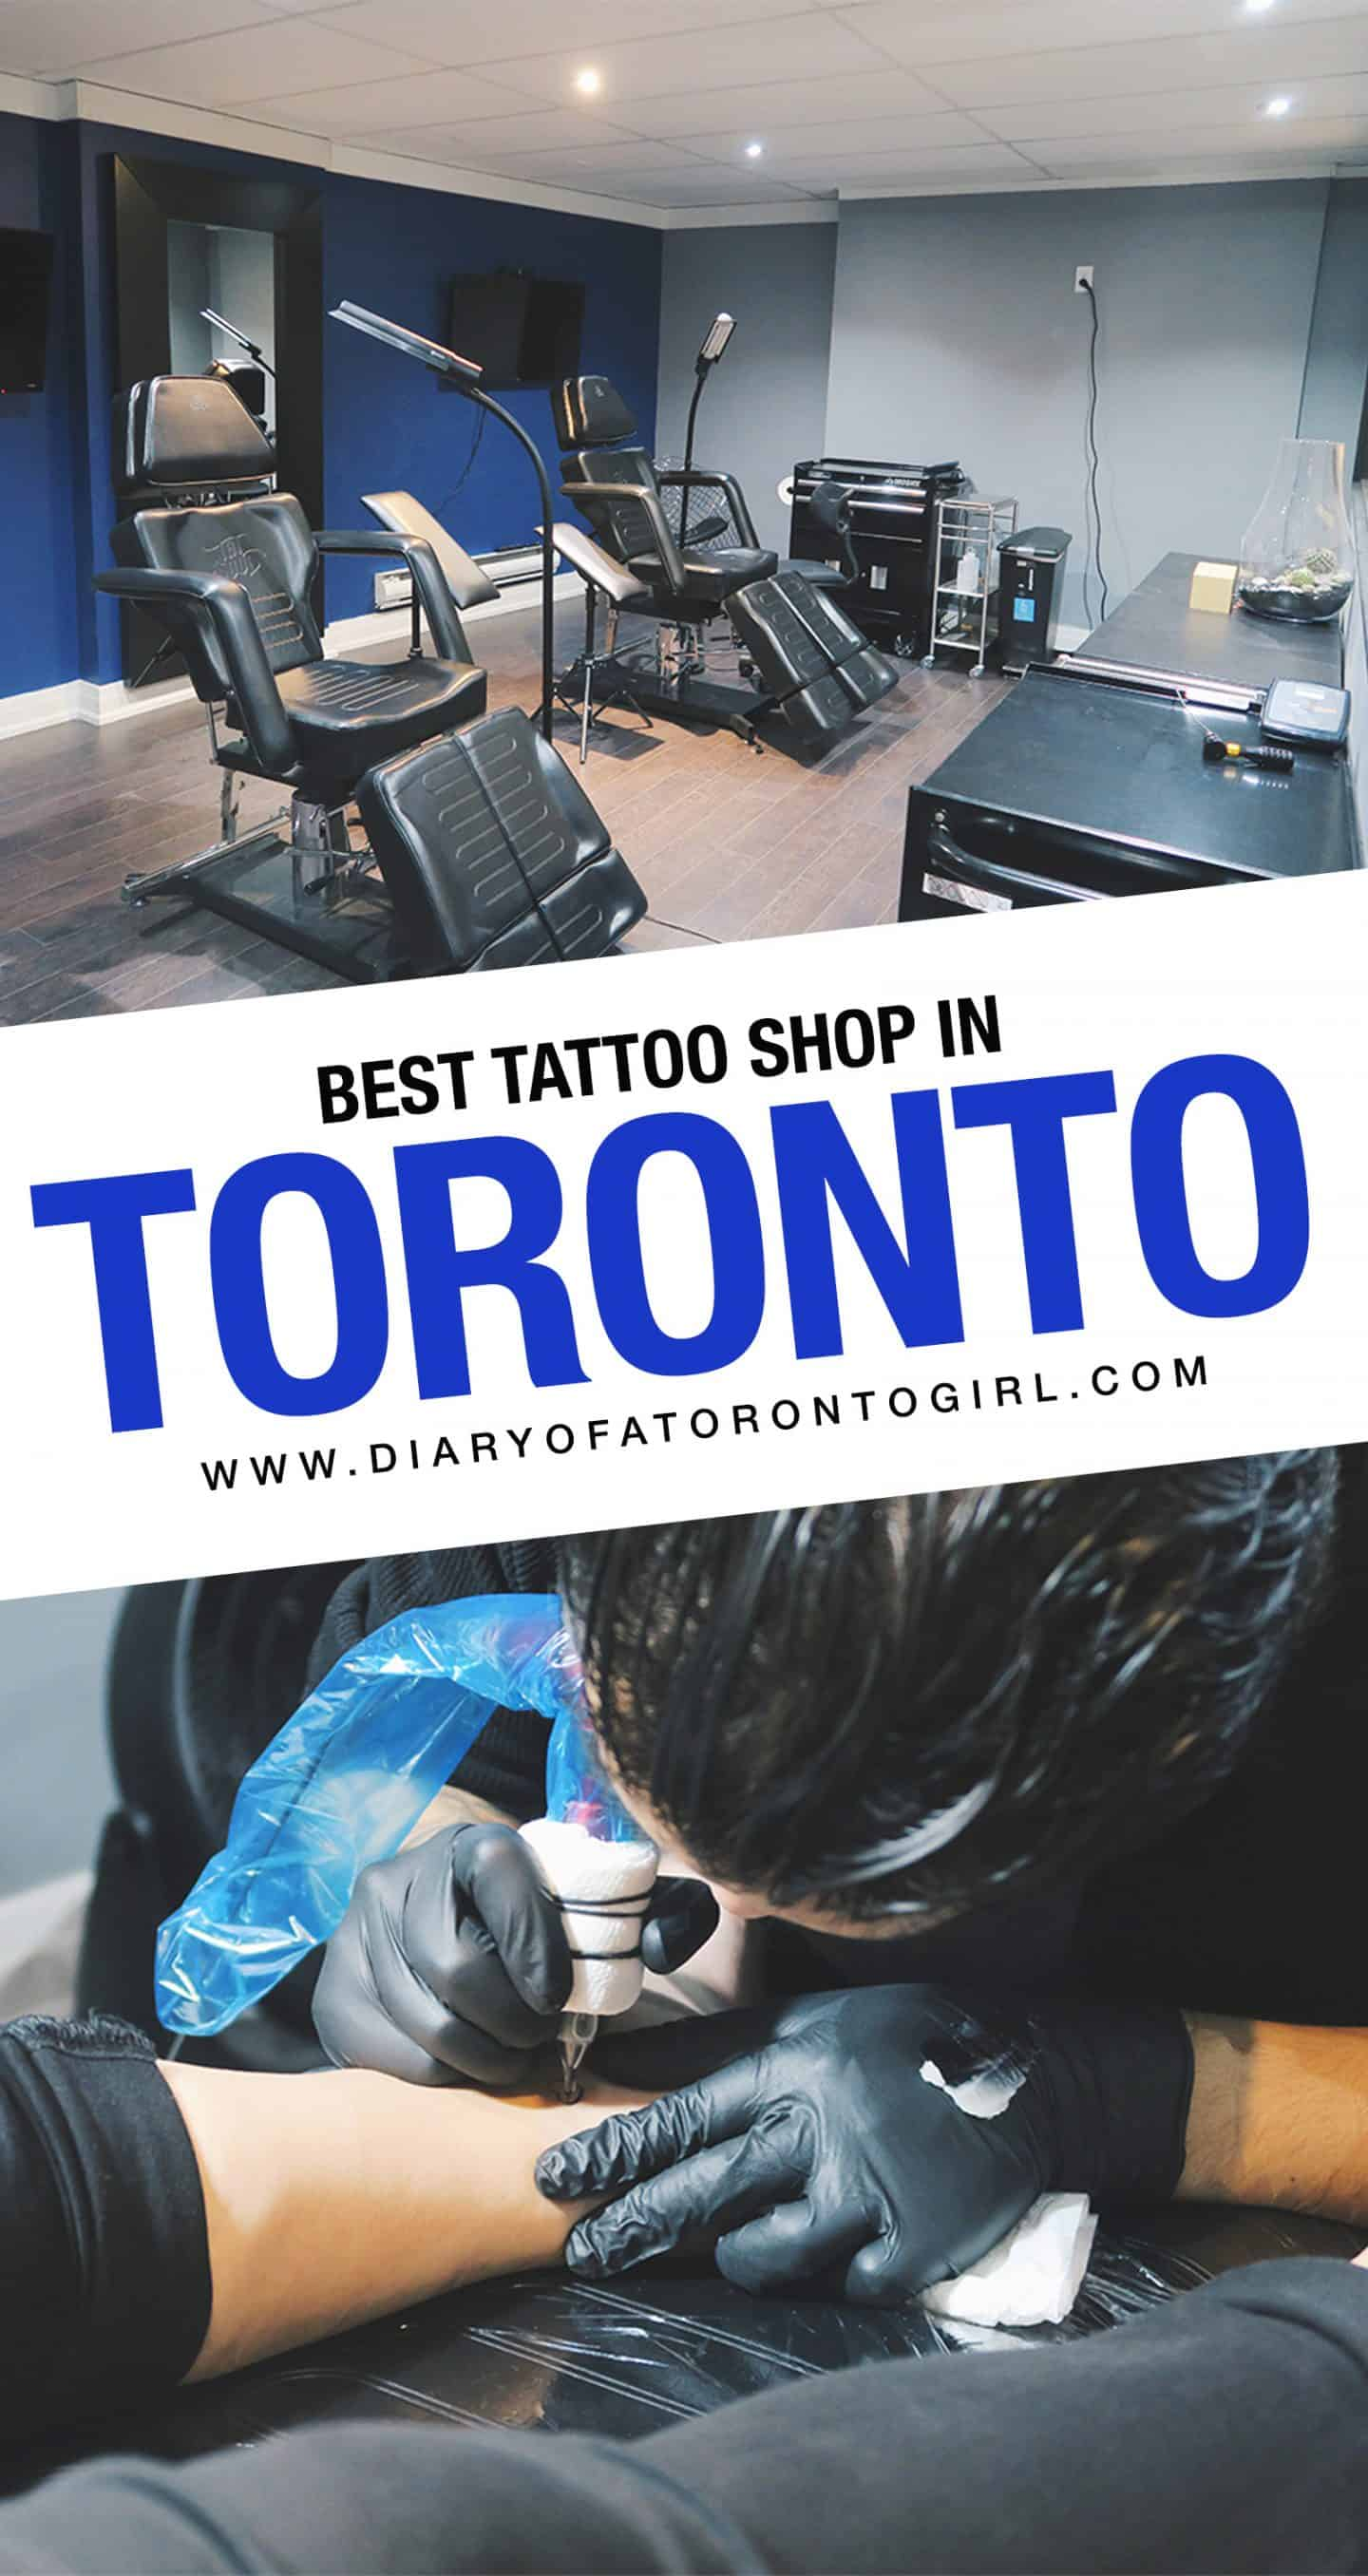 Planning on getting a tattoo done in Toronto? Here's one of the best tattoo shops to visit in Toronto, Ontario!